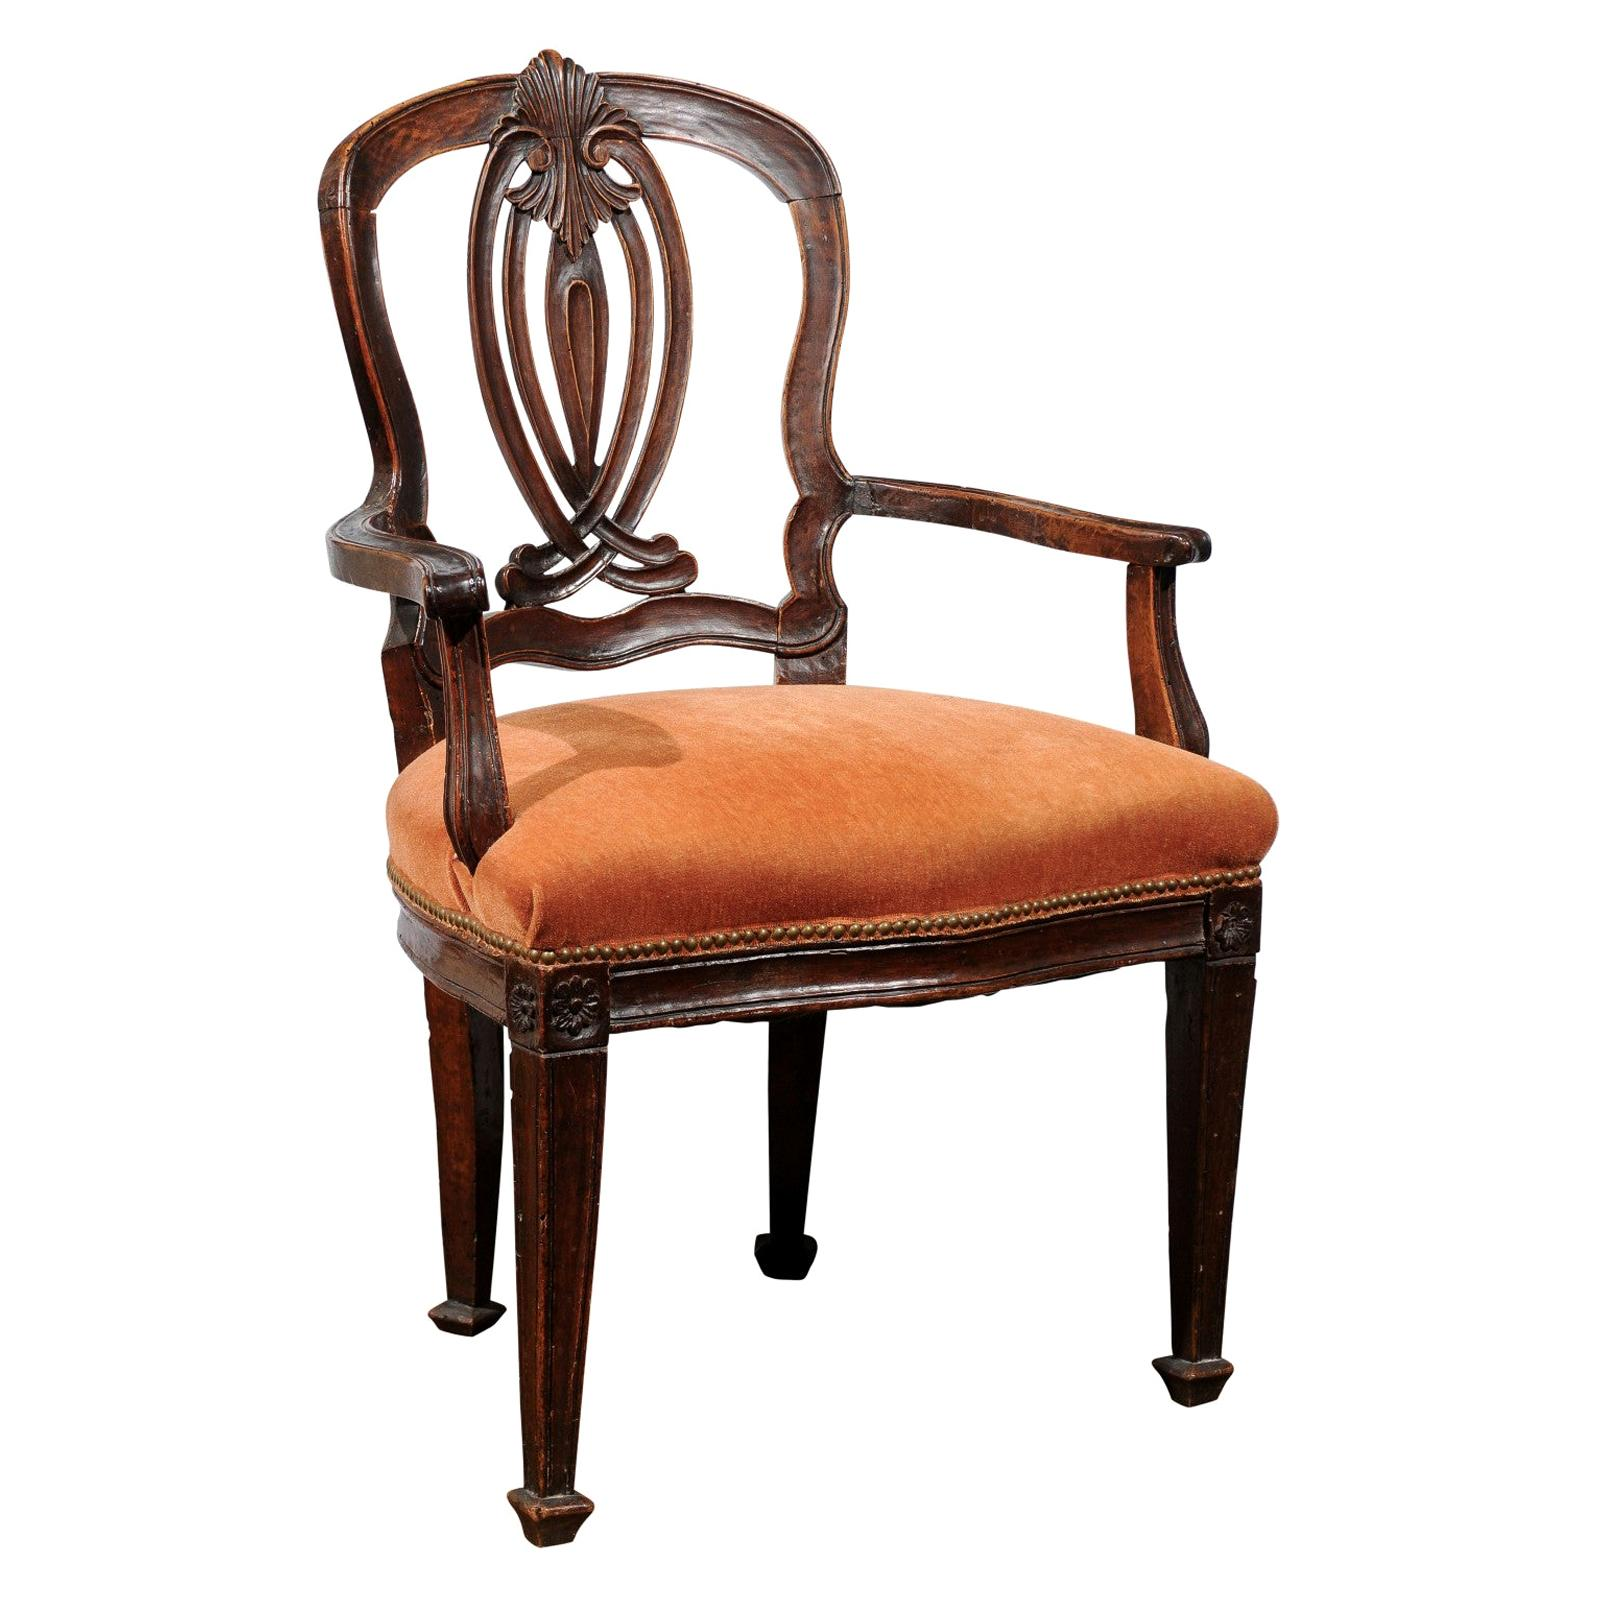 Transitional Rococo / Neoclassical Armchair in Walnut, Italy, circa 1780